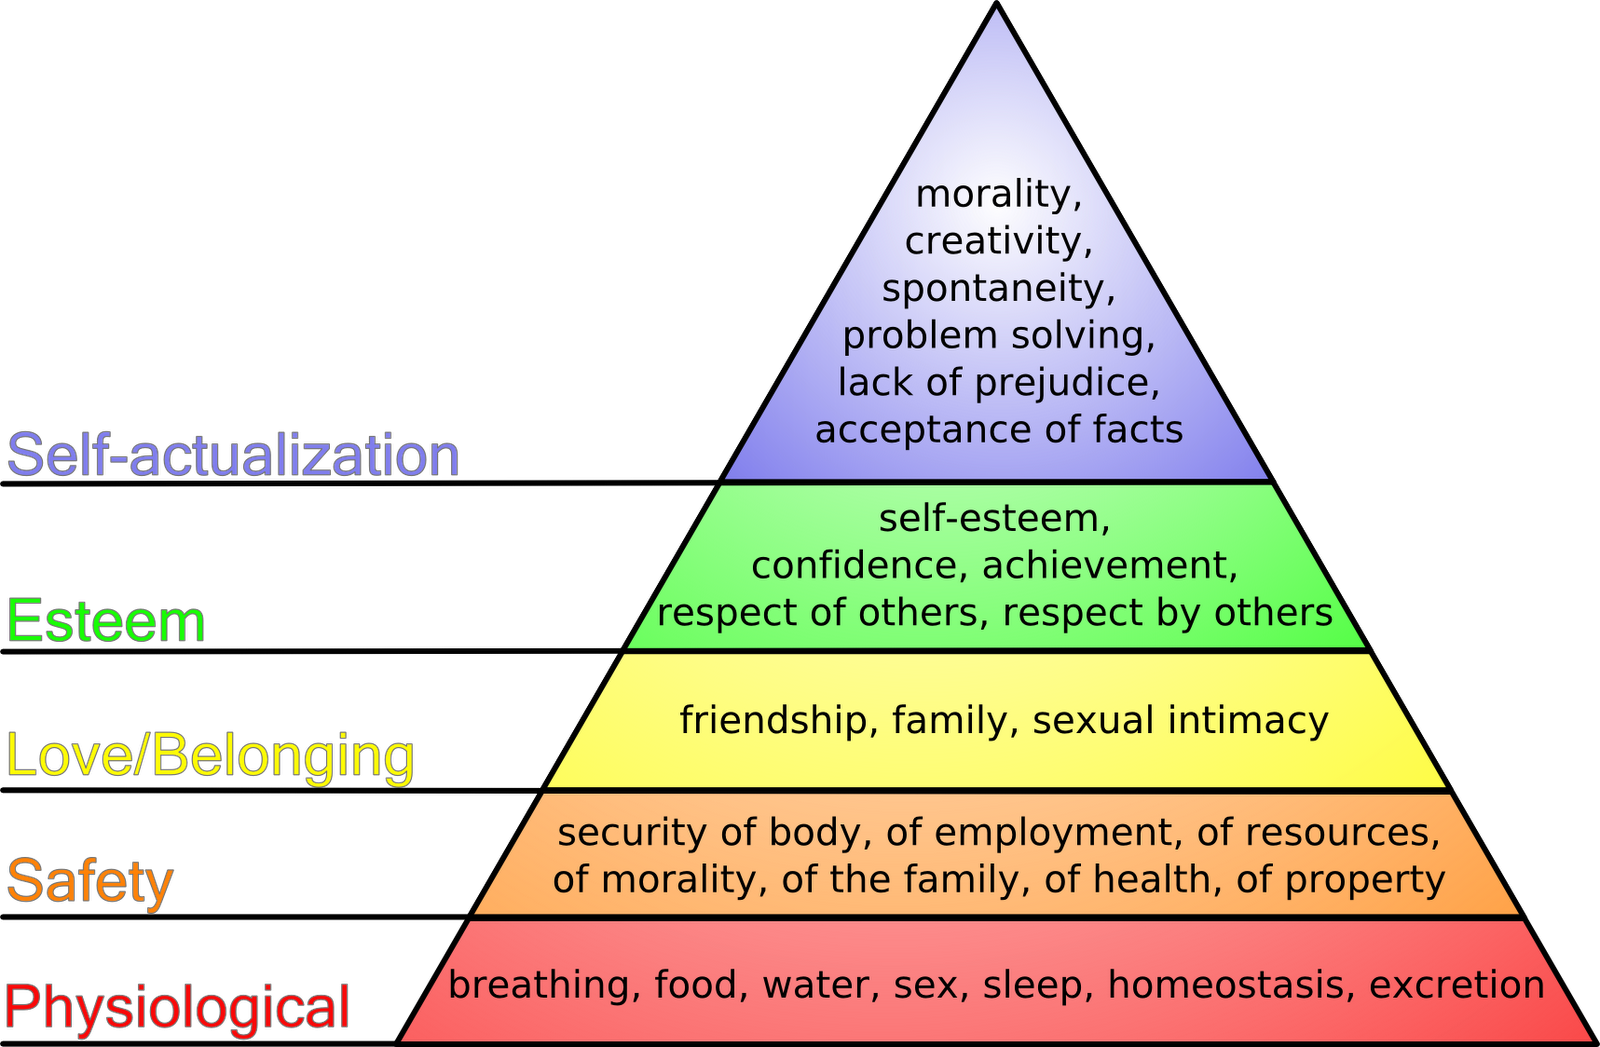 maslows hierarchy of needs and implications Maslow's self-transcendence: how it can enrich organization culture and leadership henry j venter phd associate professor national university 20 organization, identifying with a cause.